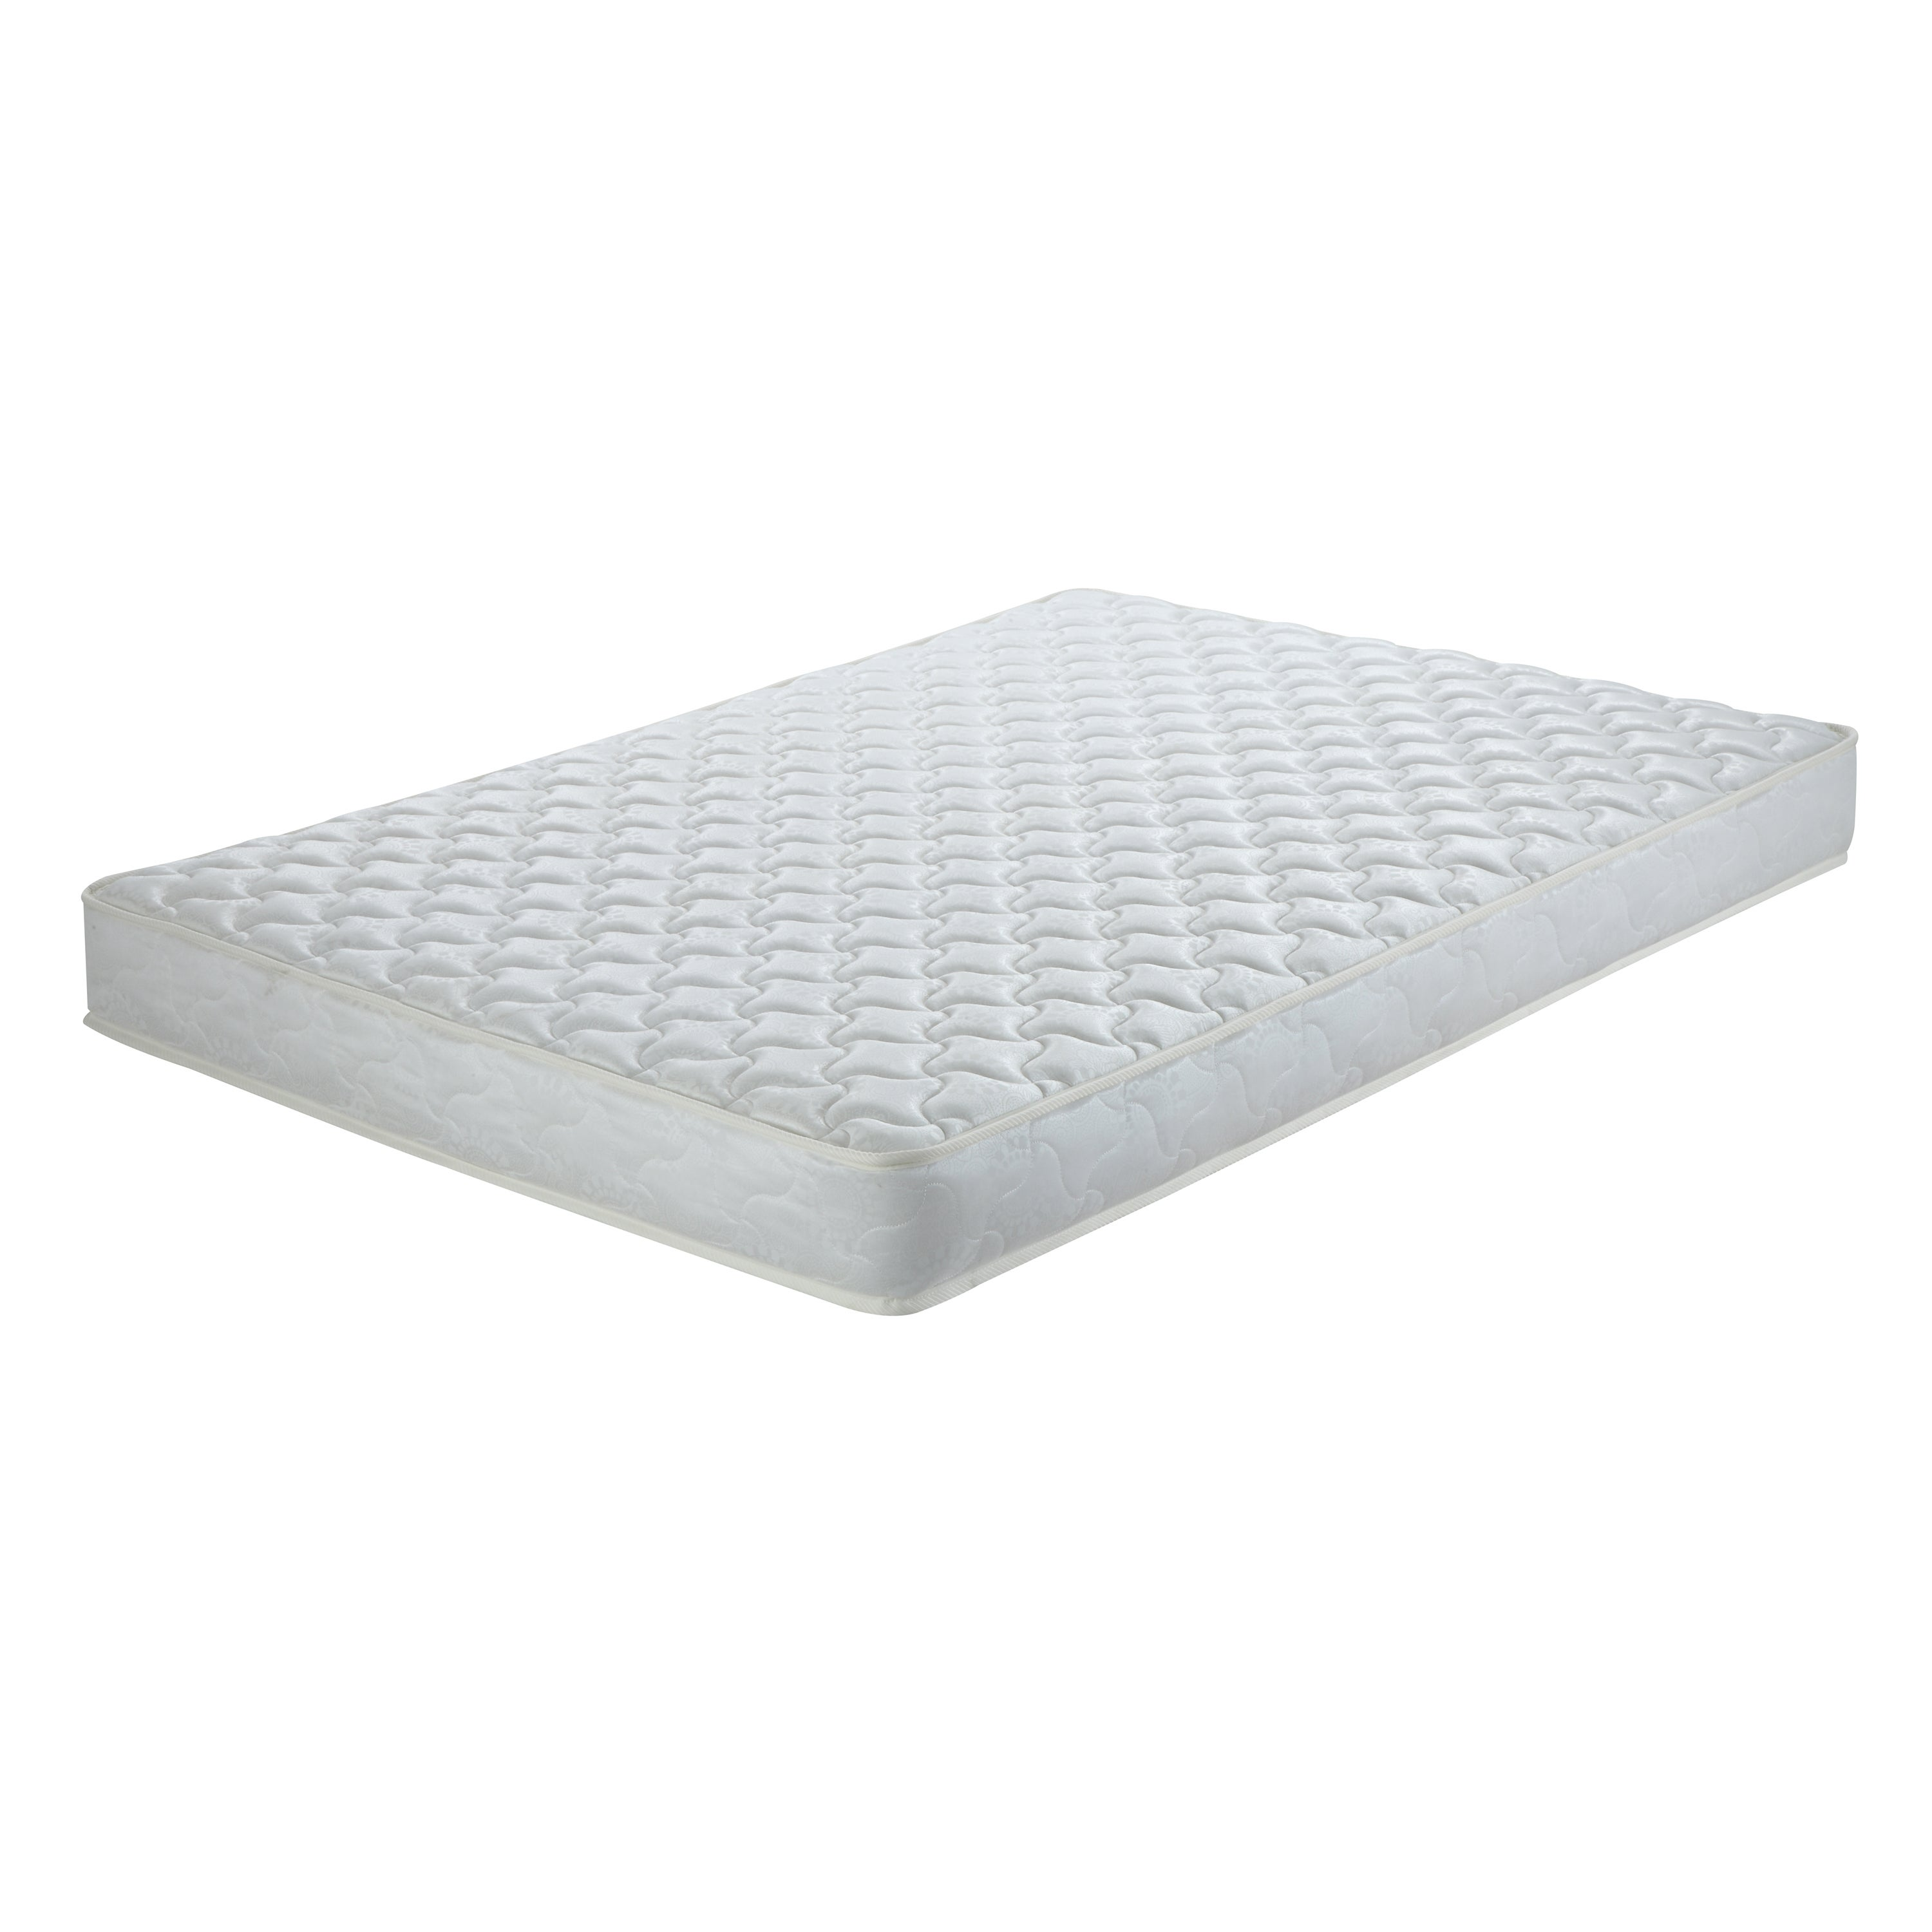 foam dimensions set memory topper king tody and shippg per size box top pillow mattress spring full queen